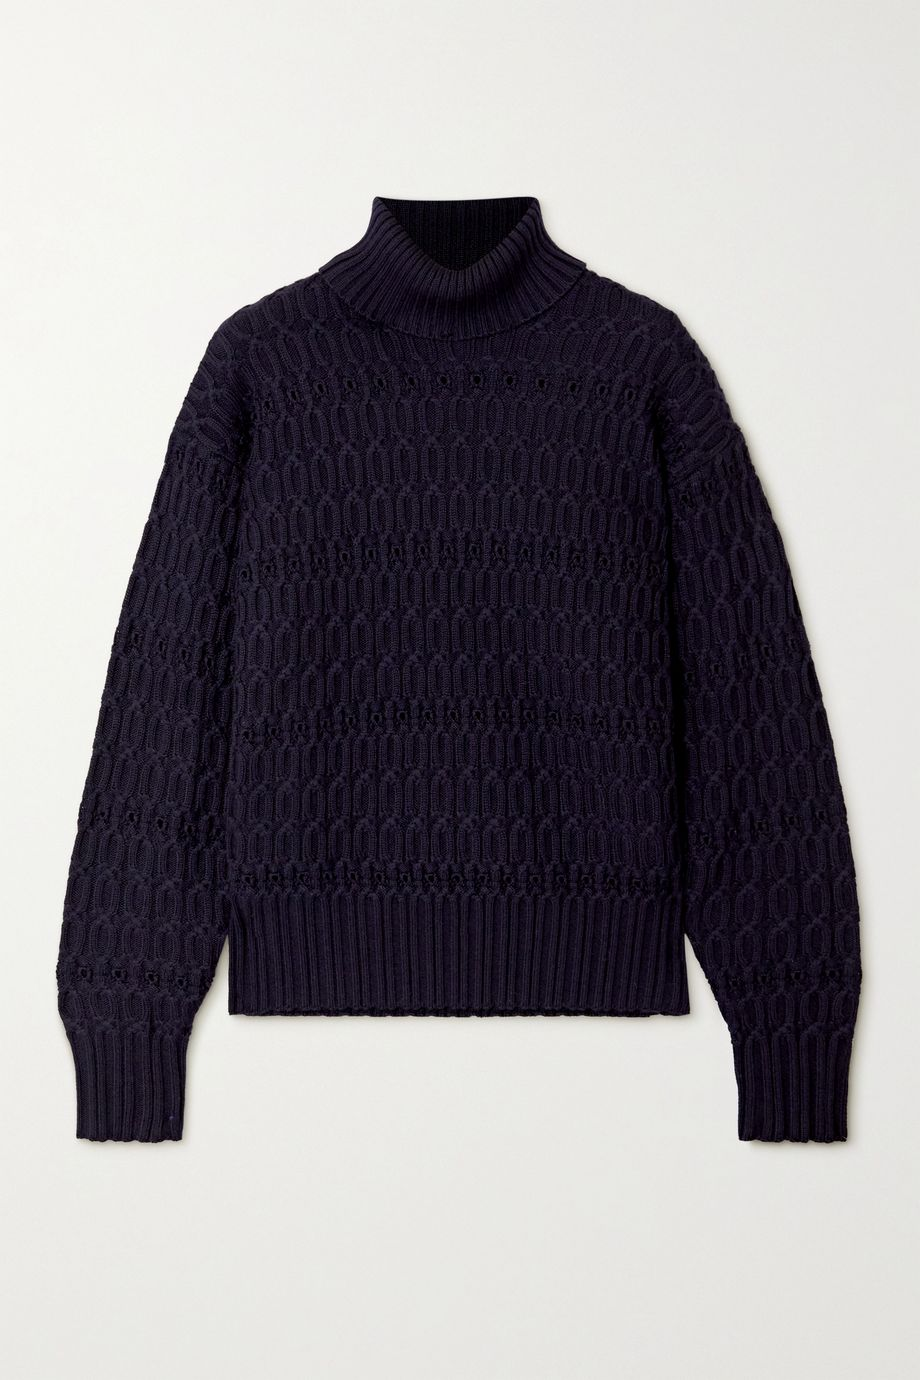 Victoria Beckham Cable-knit wool turtleneck sweater